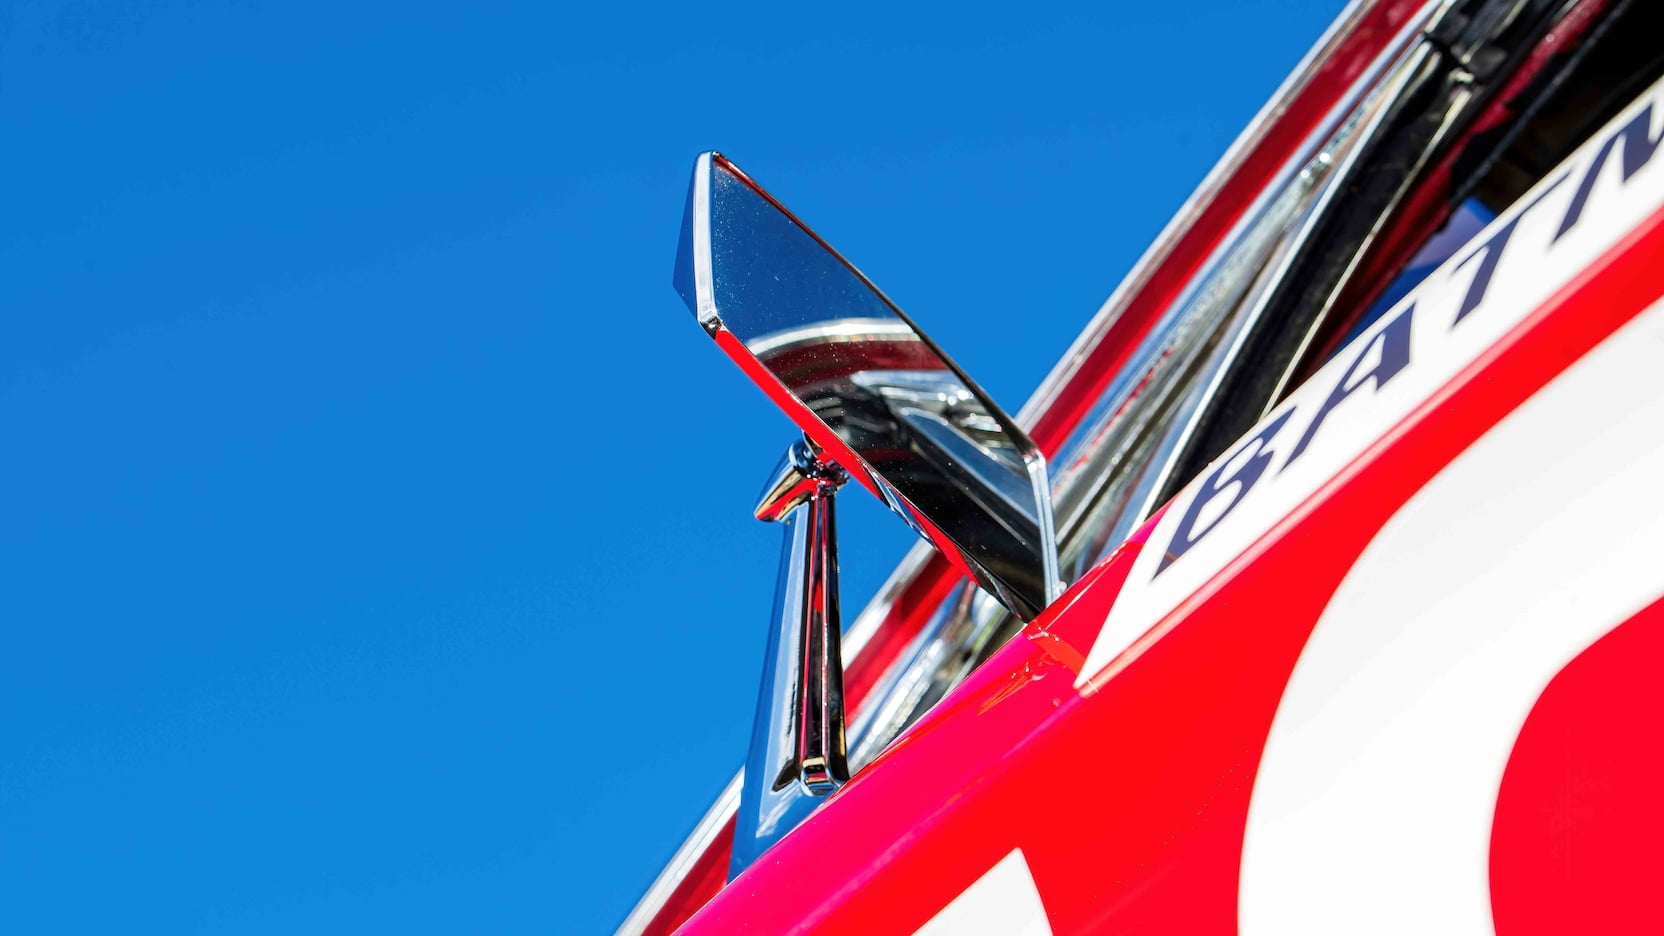 1967 Ford Mustang Holman-Moody Racer side view mirror